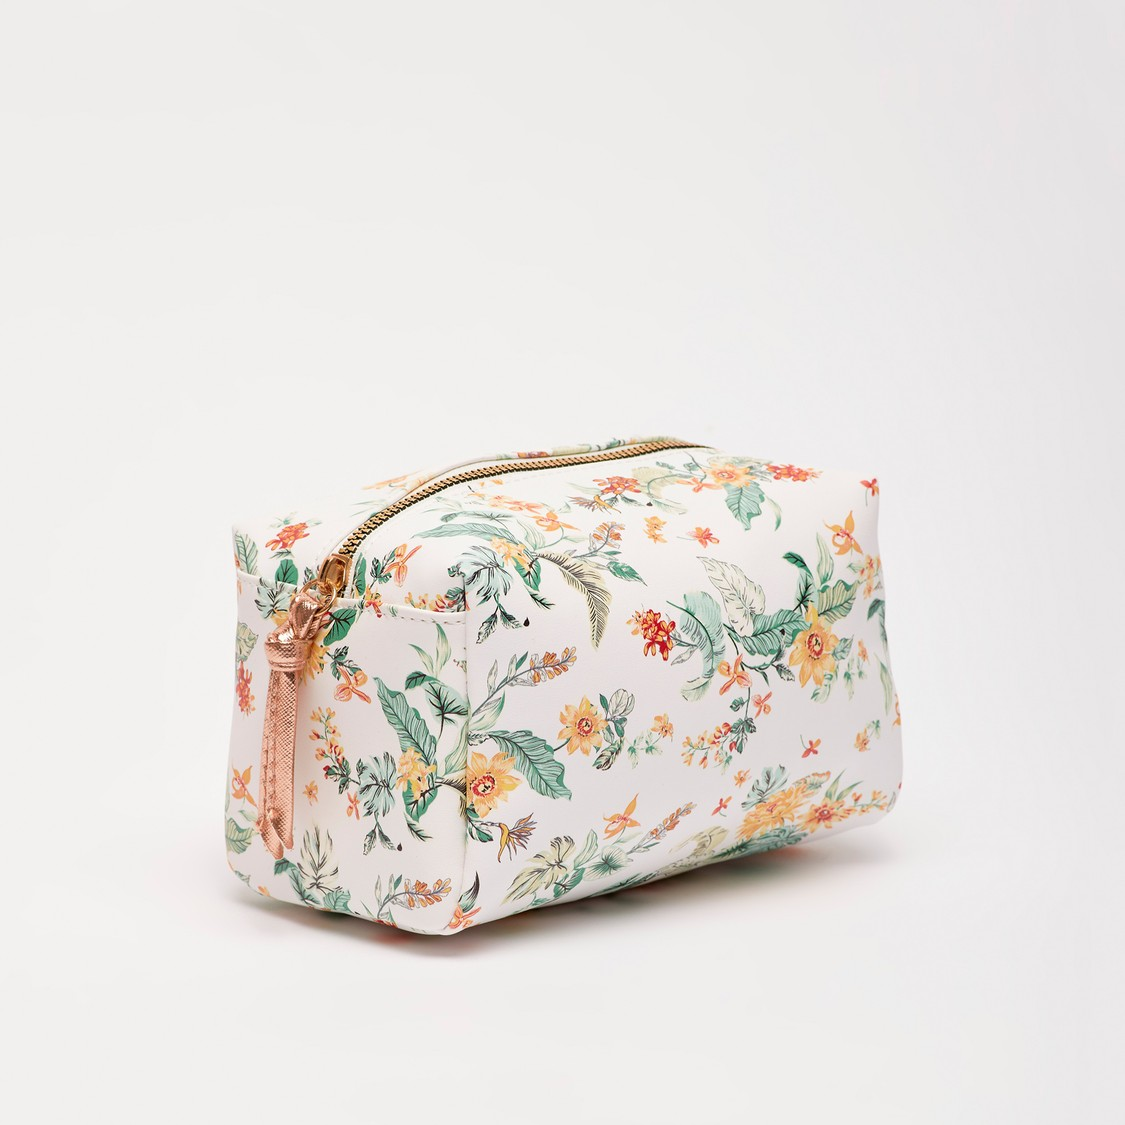 All-Over Floral Print Pouch with Zip Closure